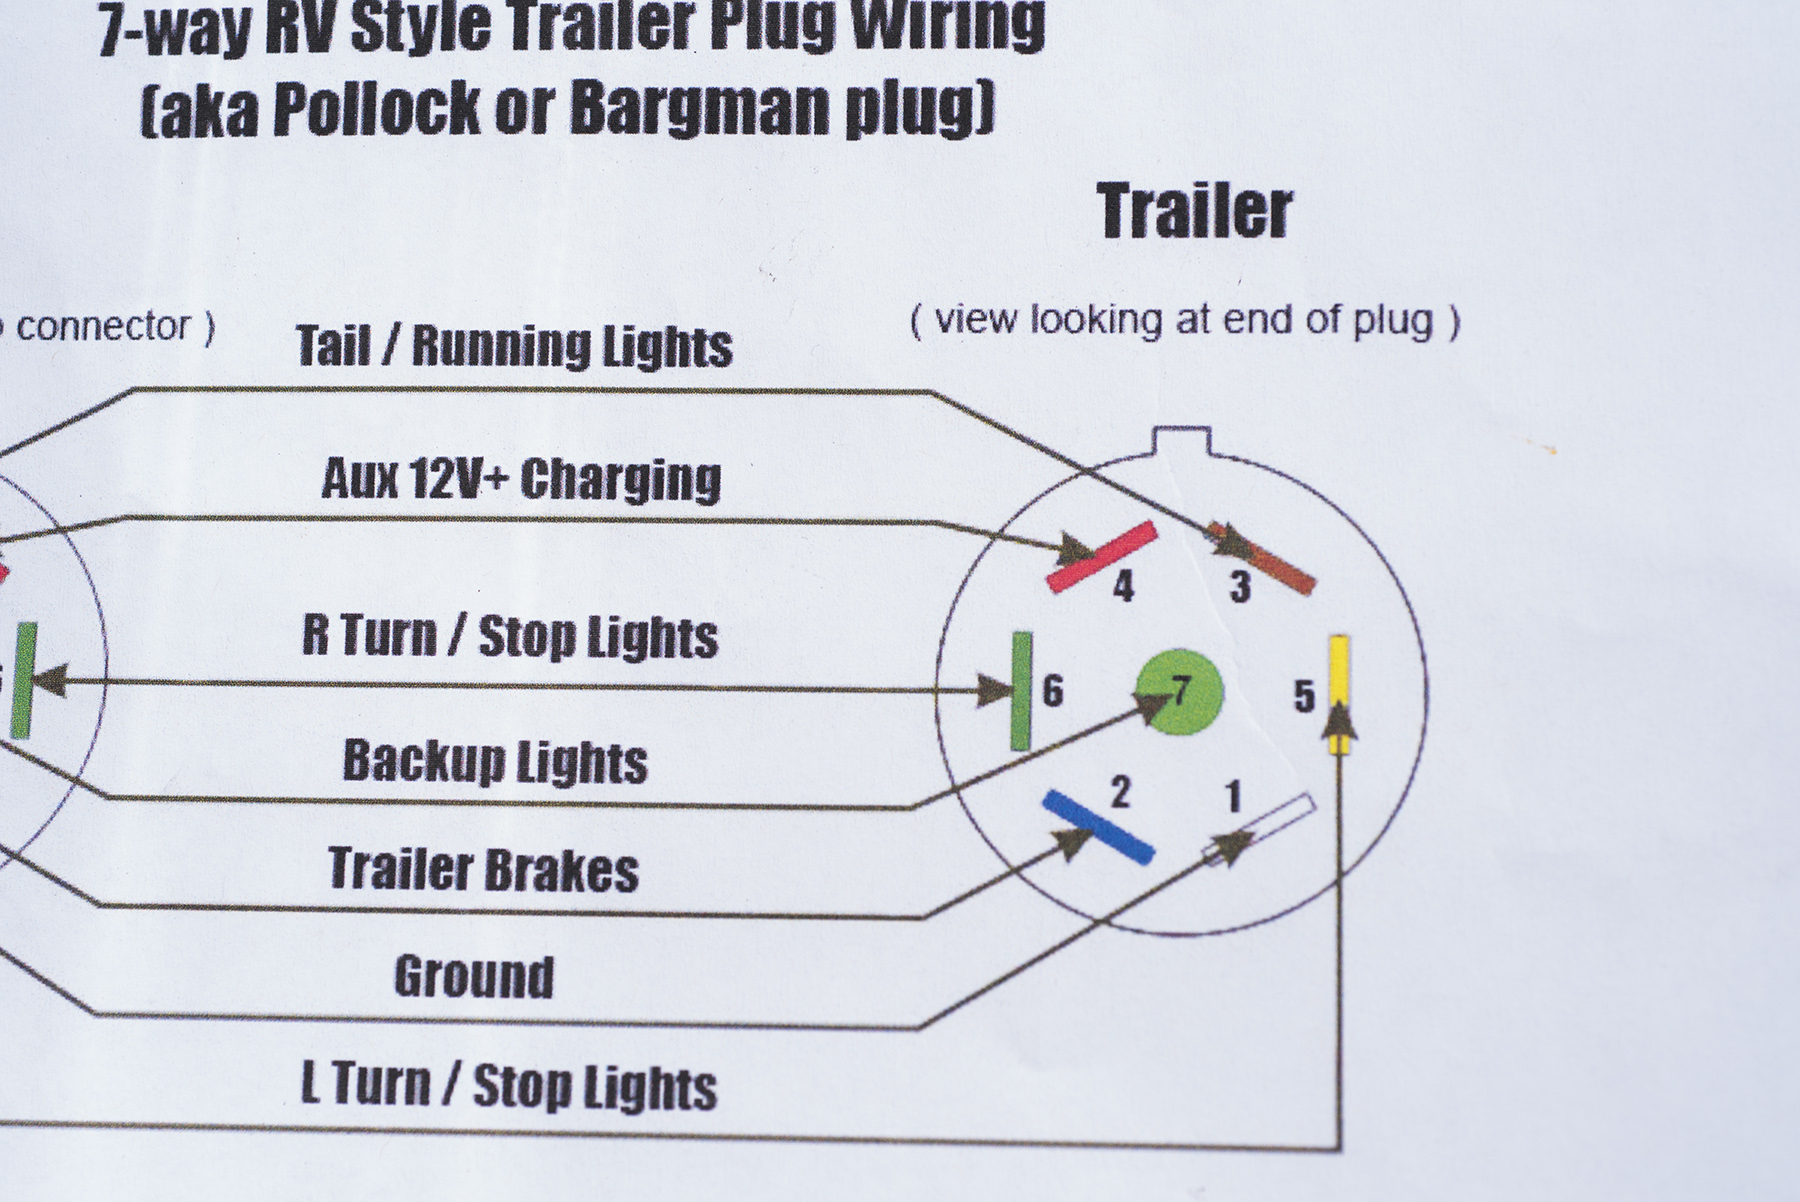 Millennium Trailer Wiring Diagram | Manual E-Books - Circle J Trailer Wiring Diagram